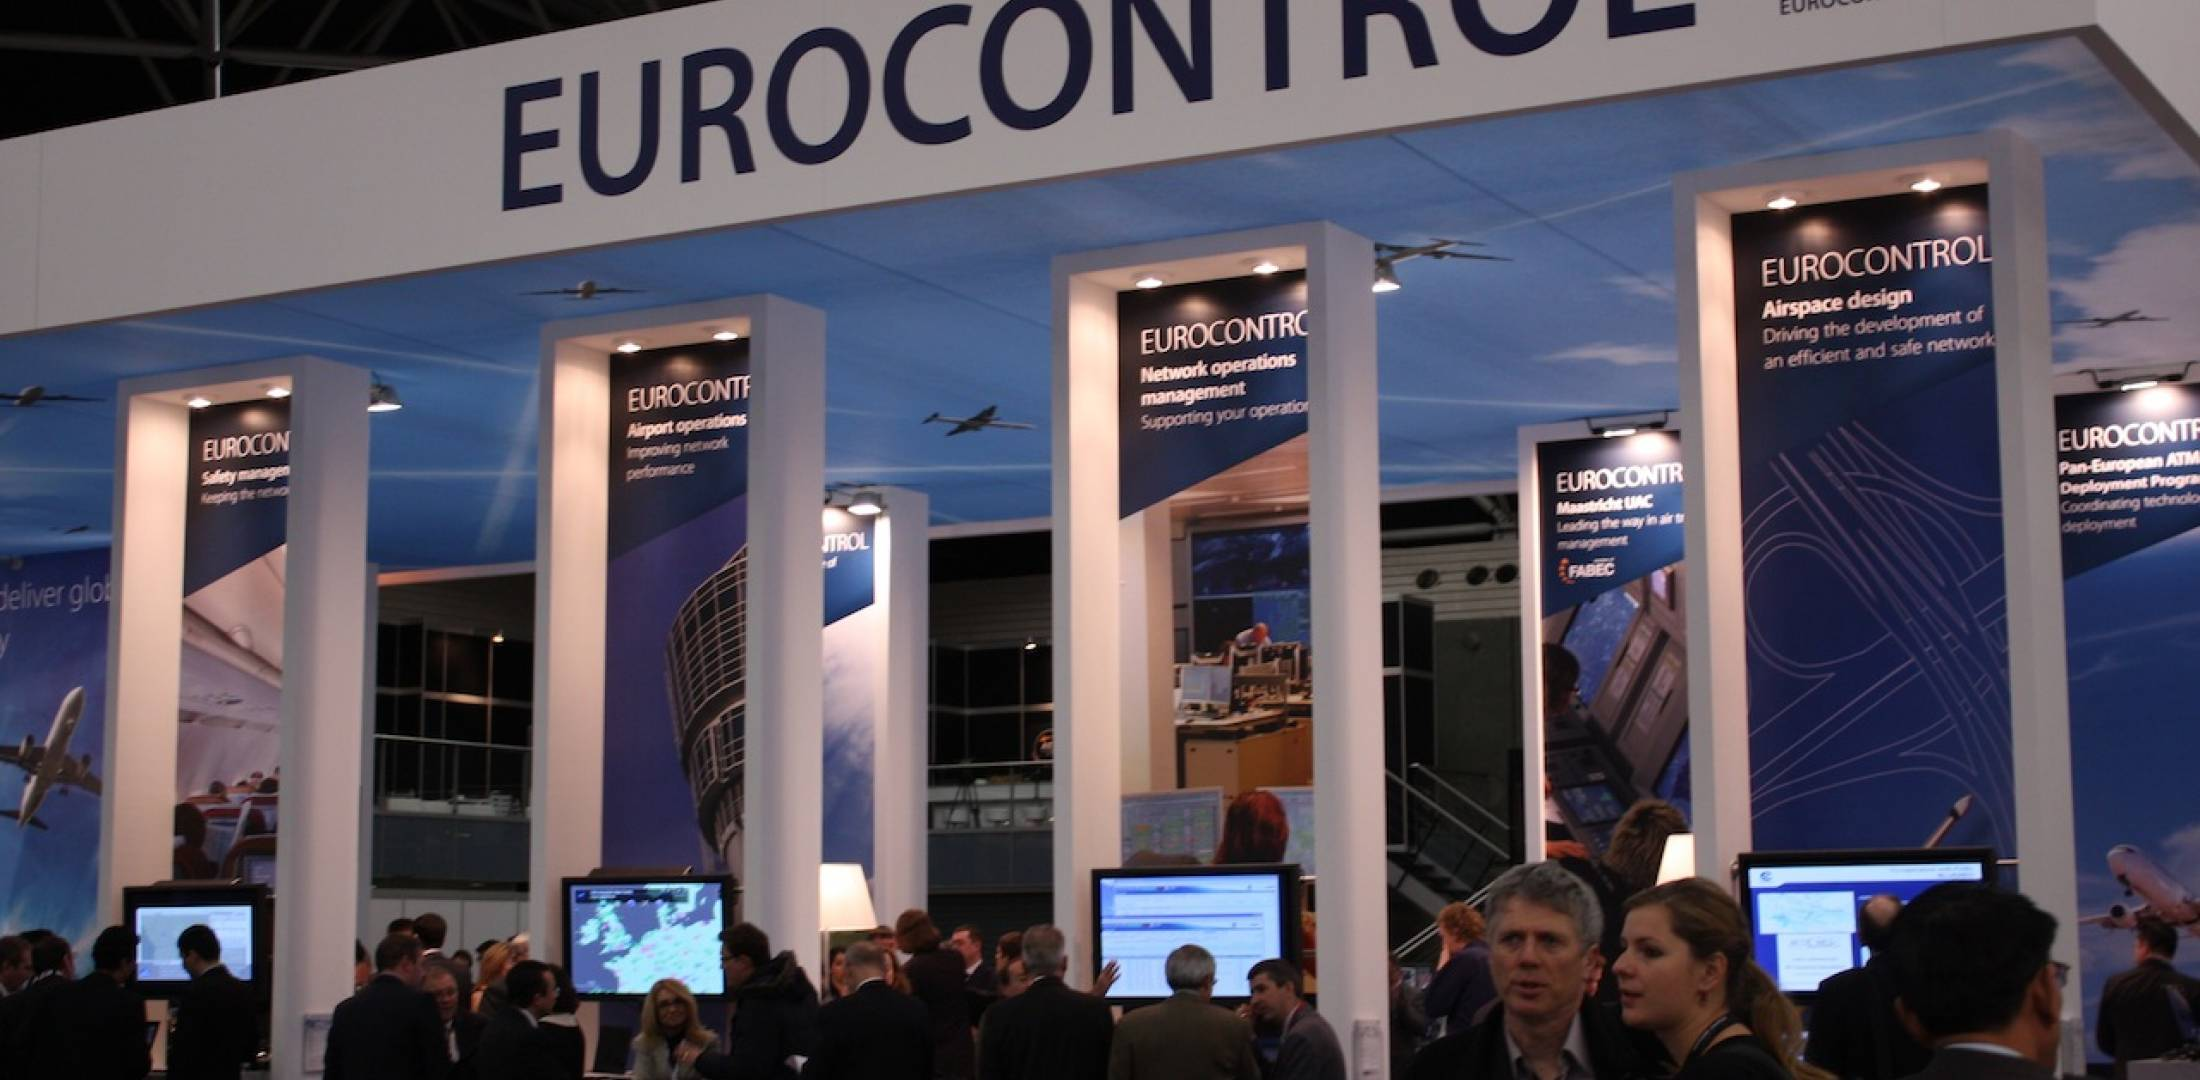 ATC Global Eurocontrol exhibit